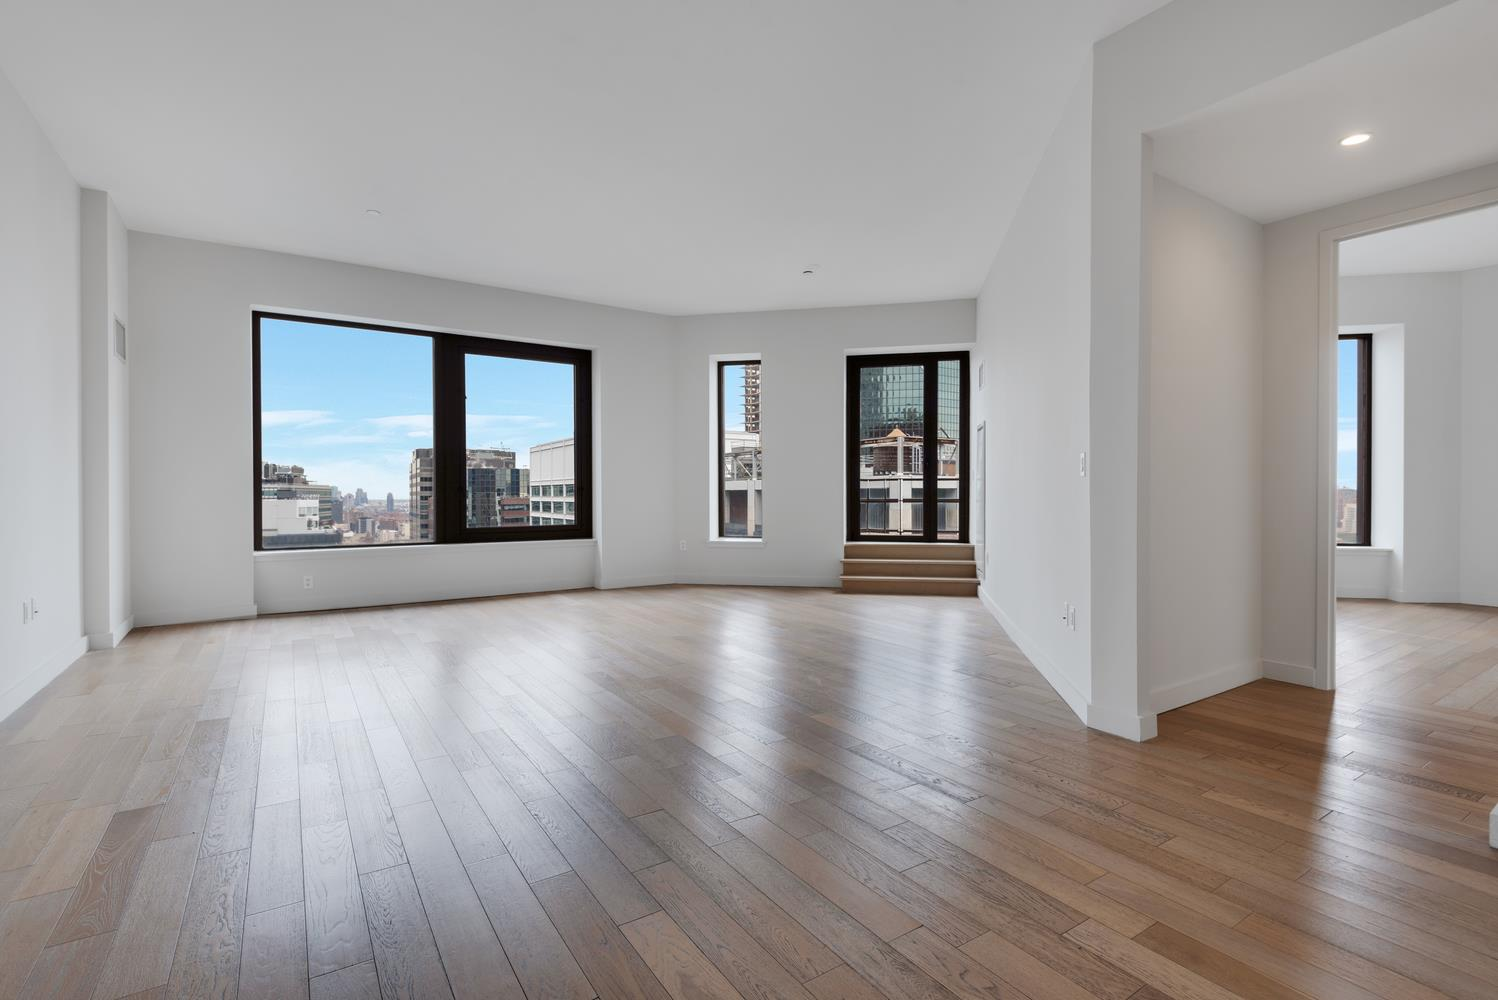 This spectacular 3 bedroom / 3 bathroom corner unit with alcove home office and 118 SQ FT private terrace offers walls of windows and unobstructed Northeastern views high above the New York skyline.  Featuring lofted ceilings, in-unit washer/dryer, double sink master bathroom vanity, enormous walk-in closets, Caeserstone kitchen countertops, Boffi lacquer kitchen cabinetry, appliances by Sub-Zero, Liebherr, Bosch, Miele, Electrolux and Sharp, your new kitchen is a chef's dream.  Bathroom features include Botticino semi classic marble flooring and wide plank cerused oak flooring throughout the apartment exemplify the top of the line finishes you can expect in this exquisite apartment.Additional concierge services include room service, catering, housekeeping, on-site parking and valet laundry.